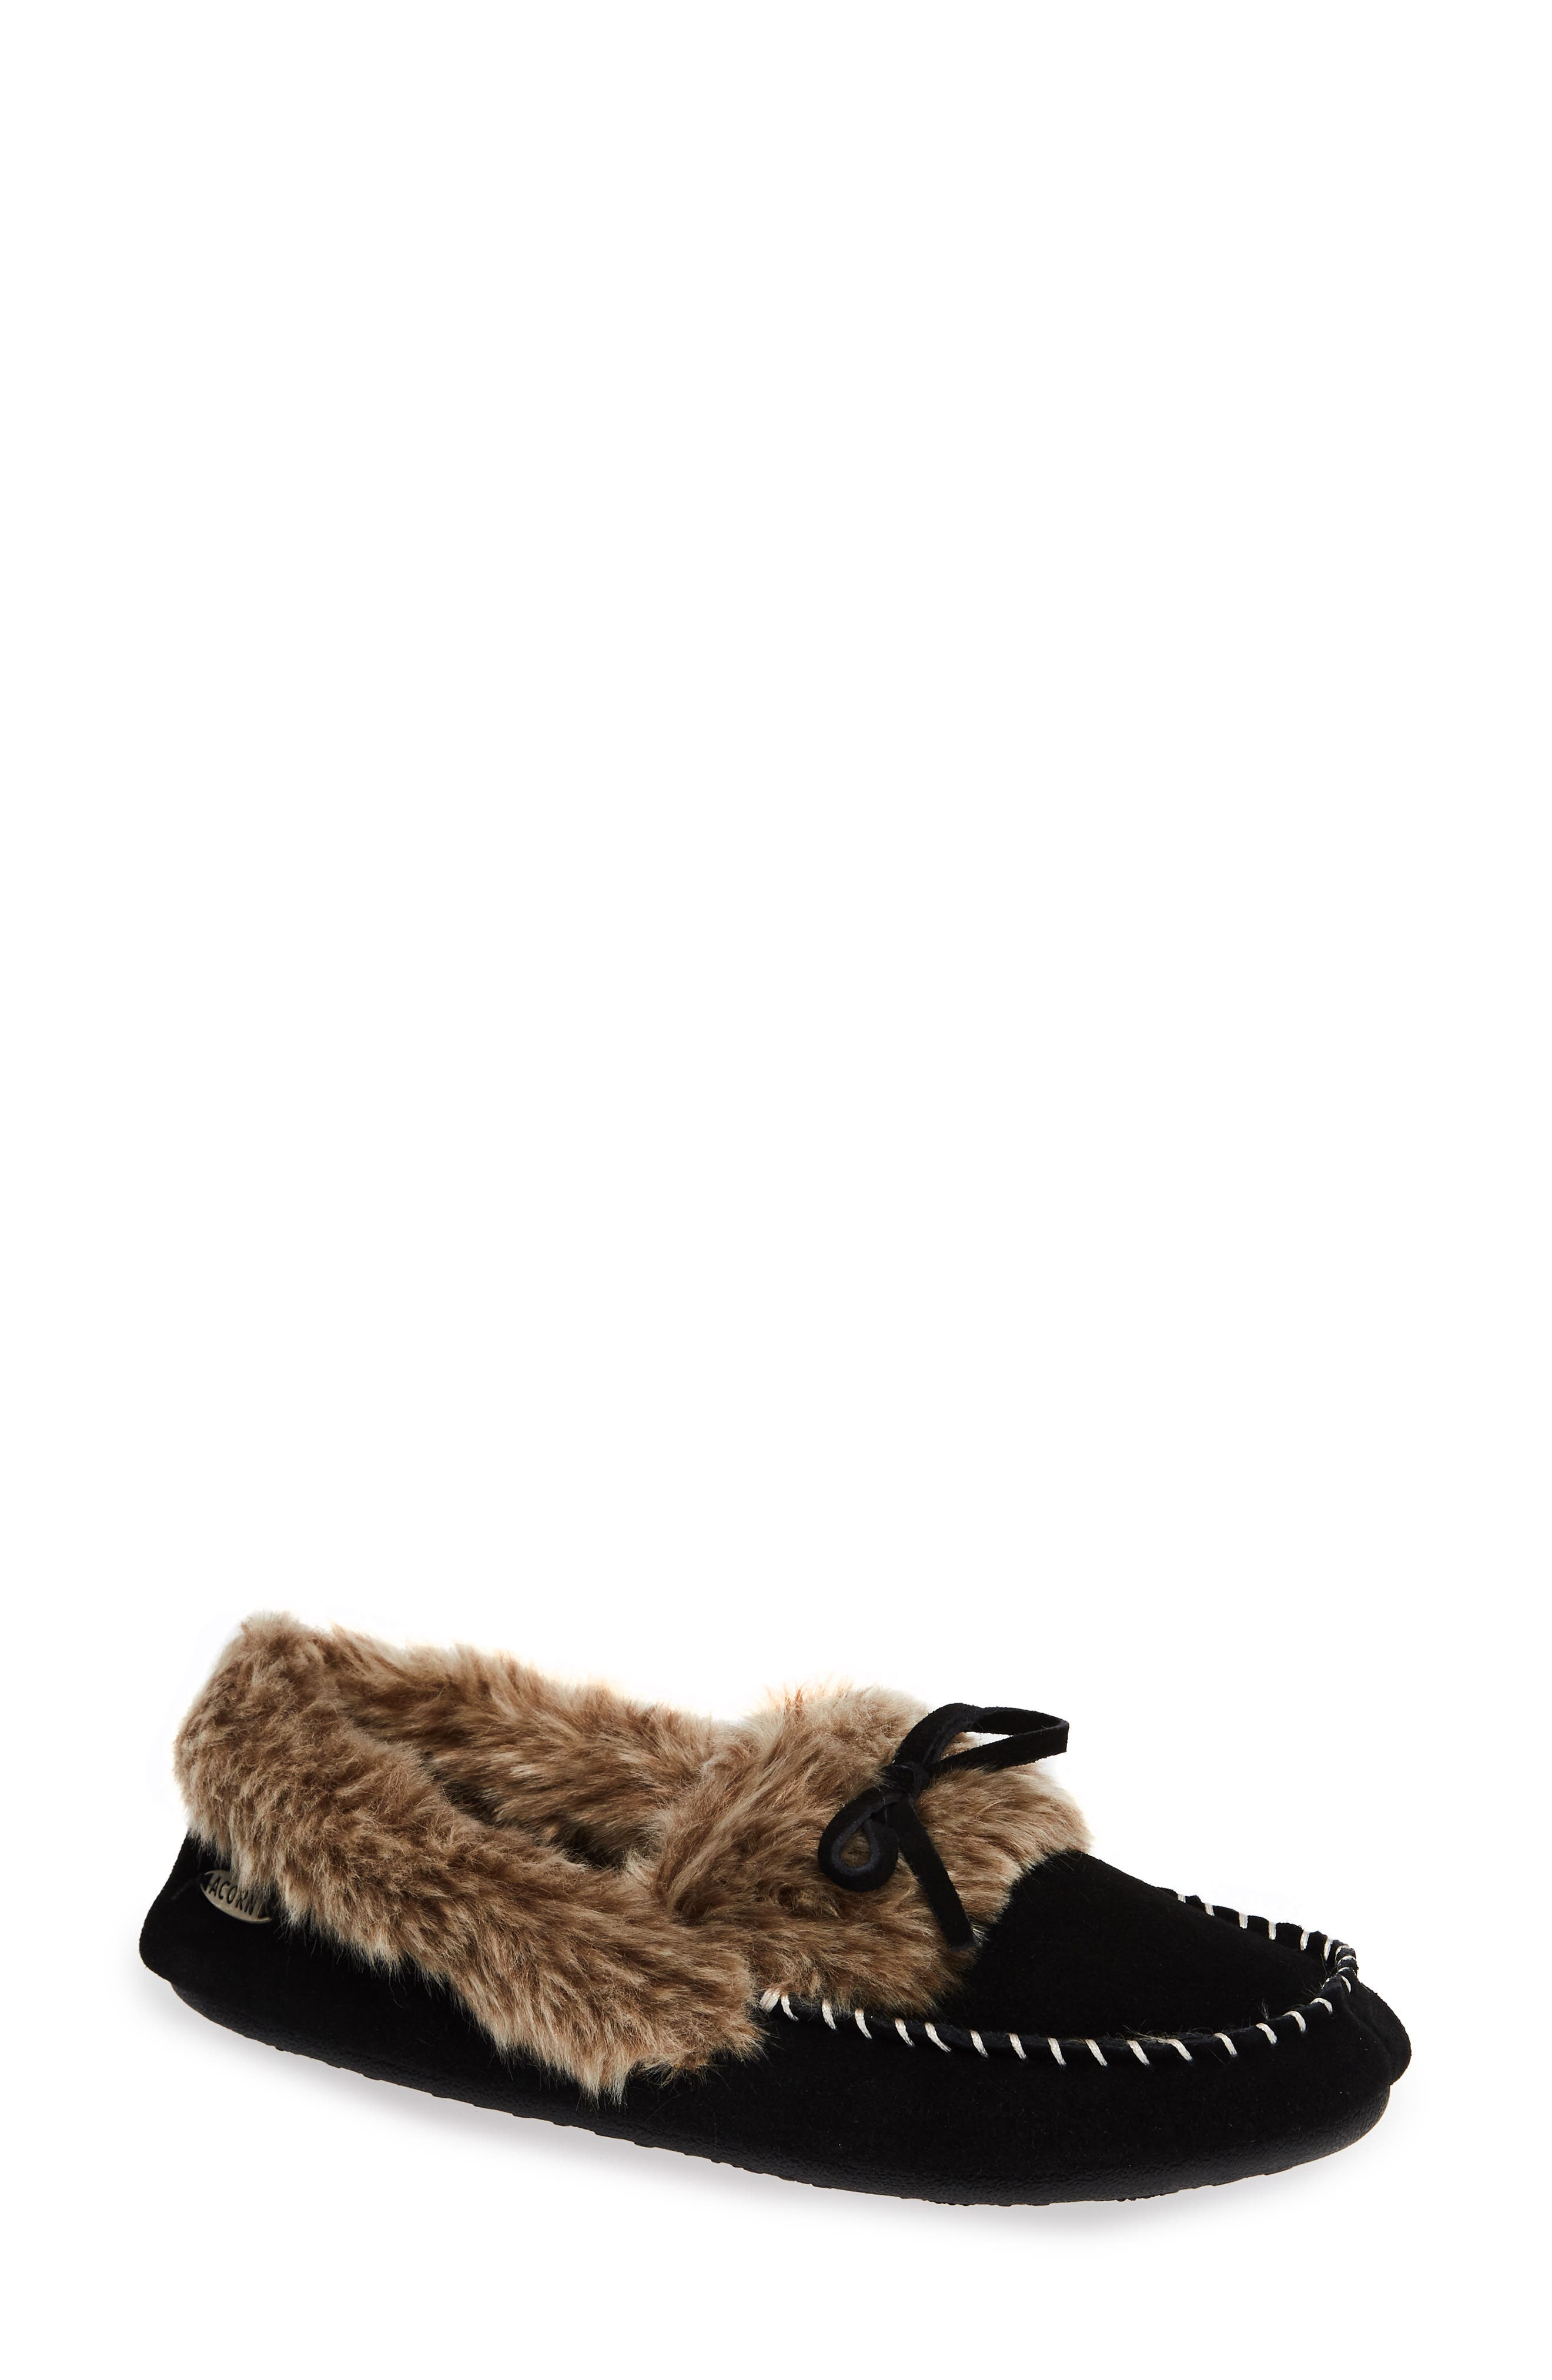 ACORN Faux Fur Trim Moccasin Indoor/Outdoor Slipper in Black Suede